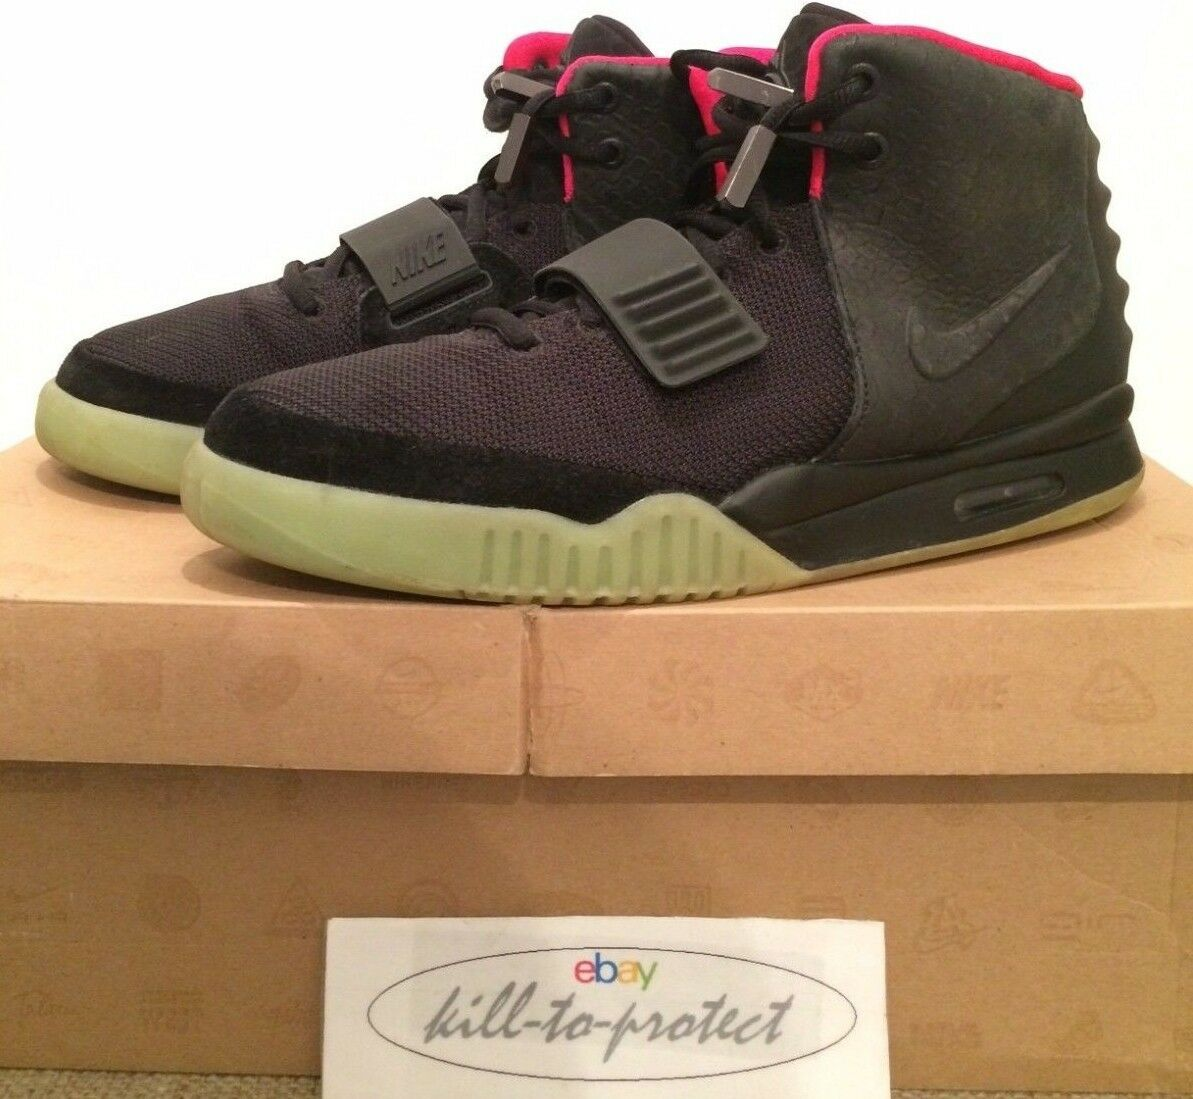 USED- NIKE AIR YEEZY 2 BLACK SOLAR RED Sz US9.5 UK8.5 KANYE WEST 508214-006 2012 Seasonal price cuts, discount benefits